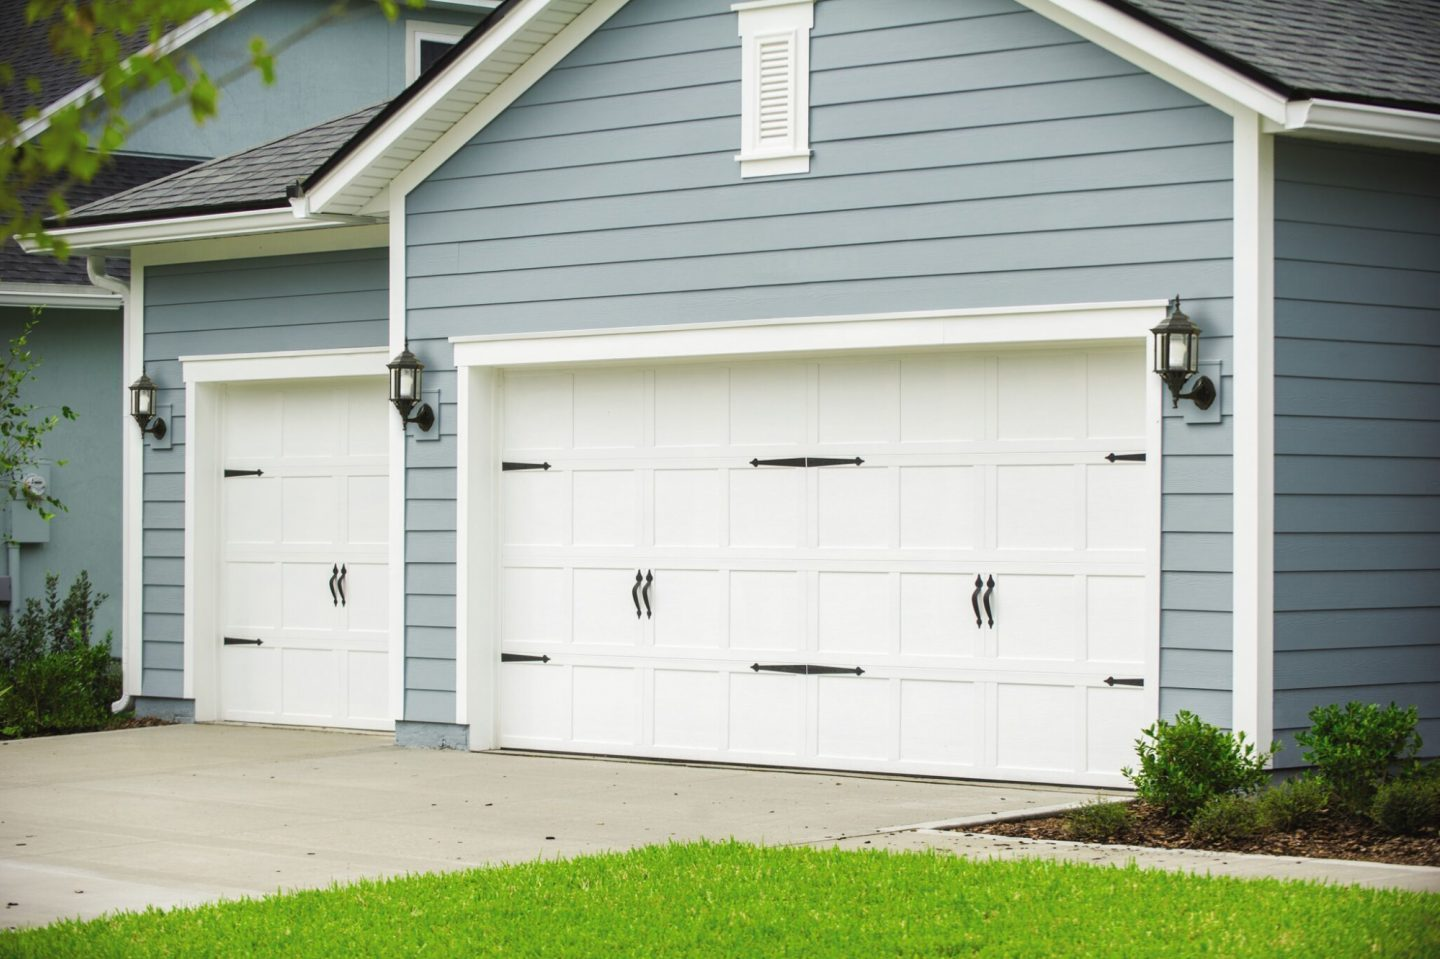 grey-house-with-front-drive-and-white-garage-doors-with-black-hardware.jpg?mtime=20181123164206#asset:10858:c1440xauto